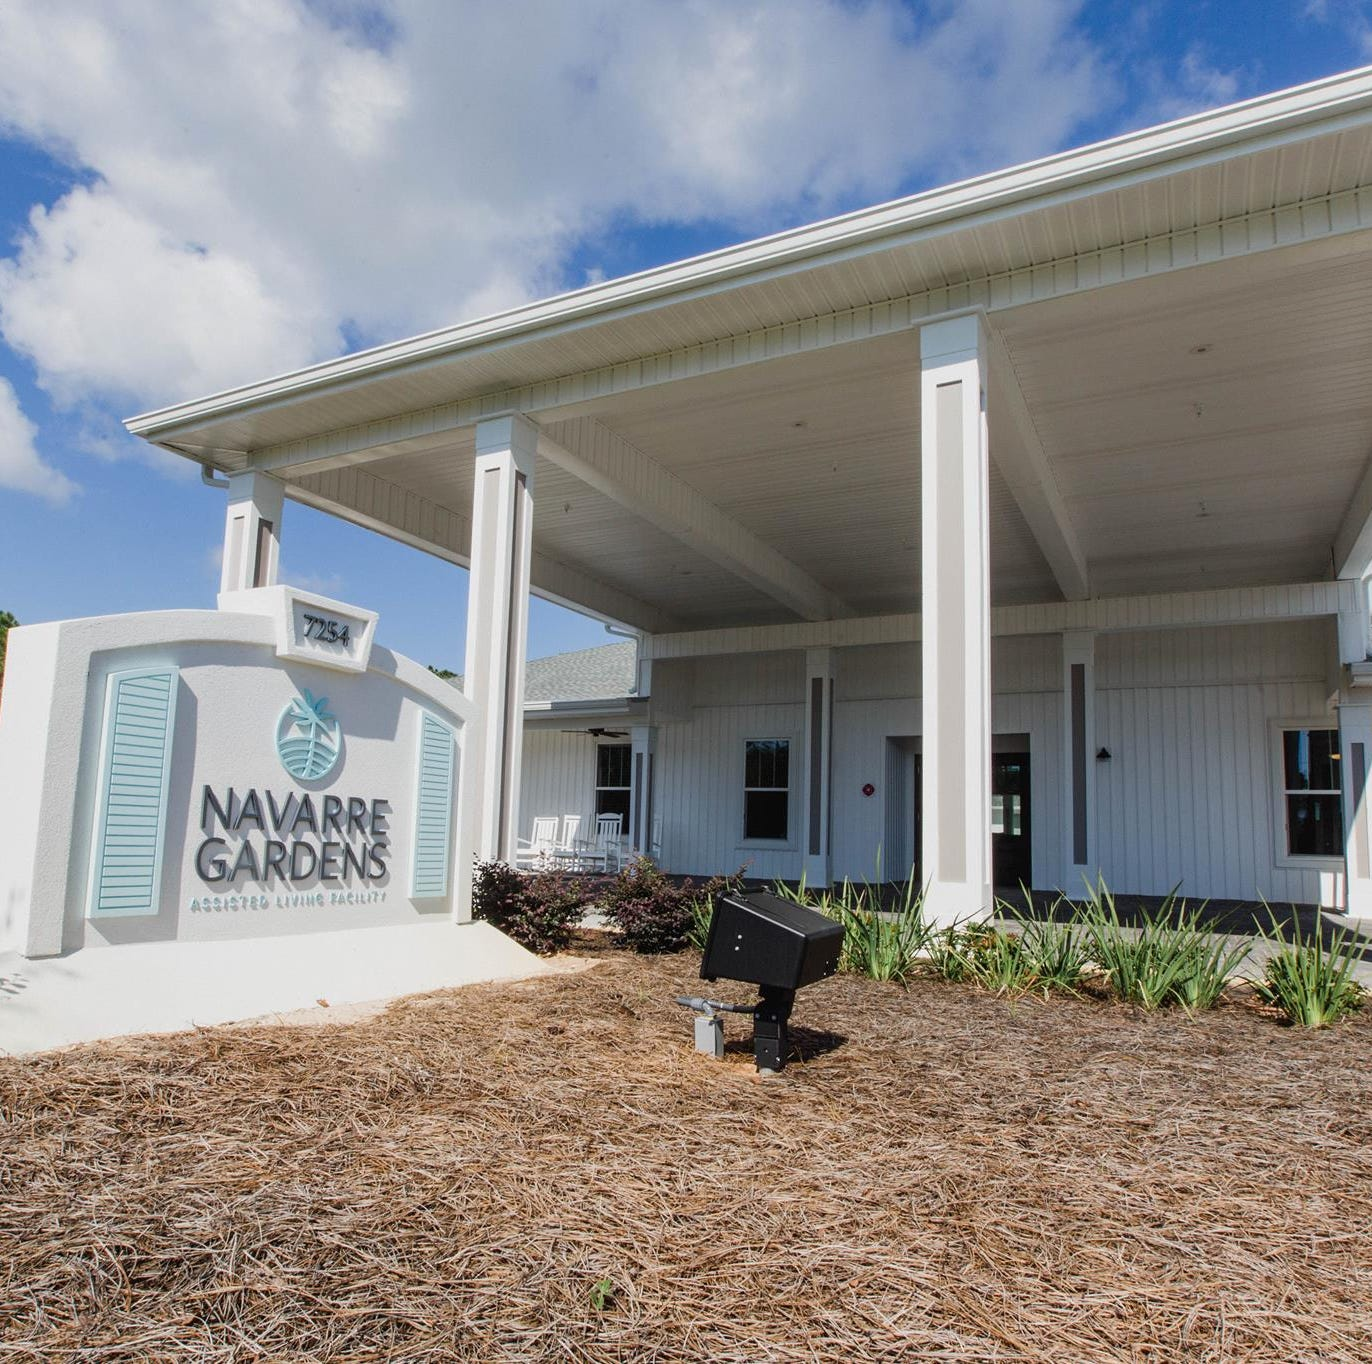 Navarre Gardens plans for larger assisted living facility in 2019